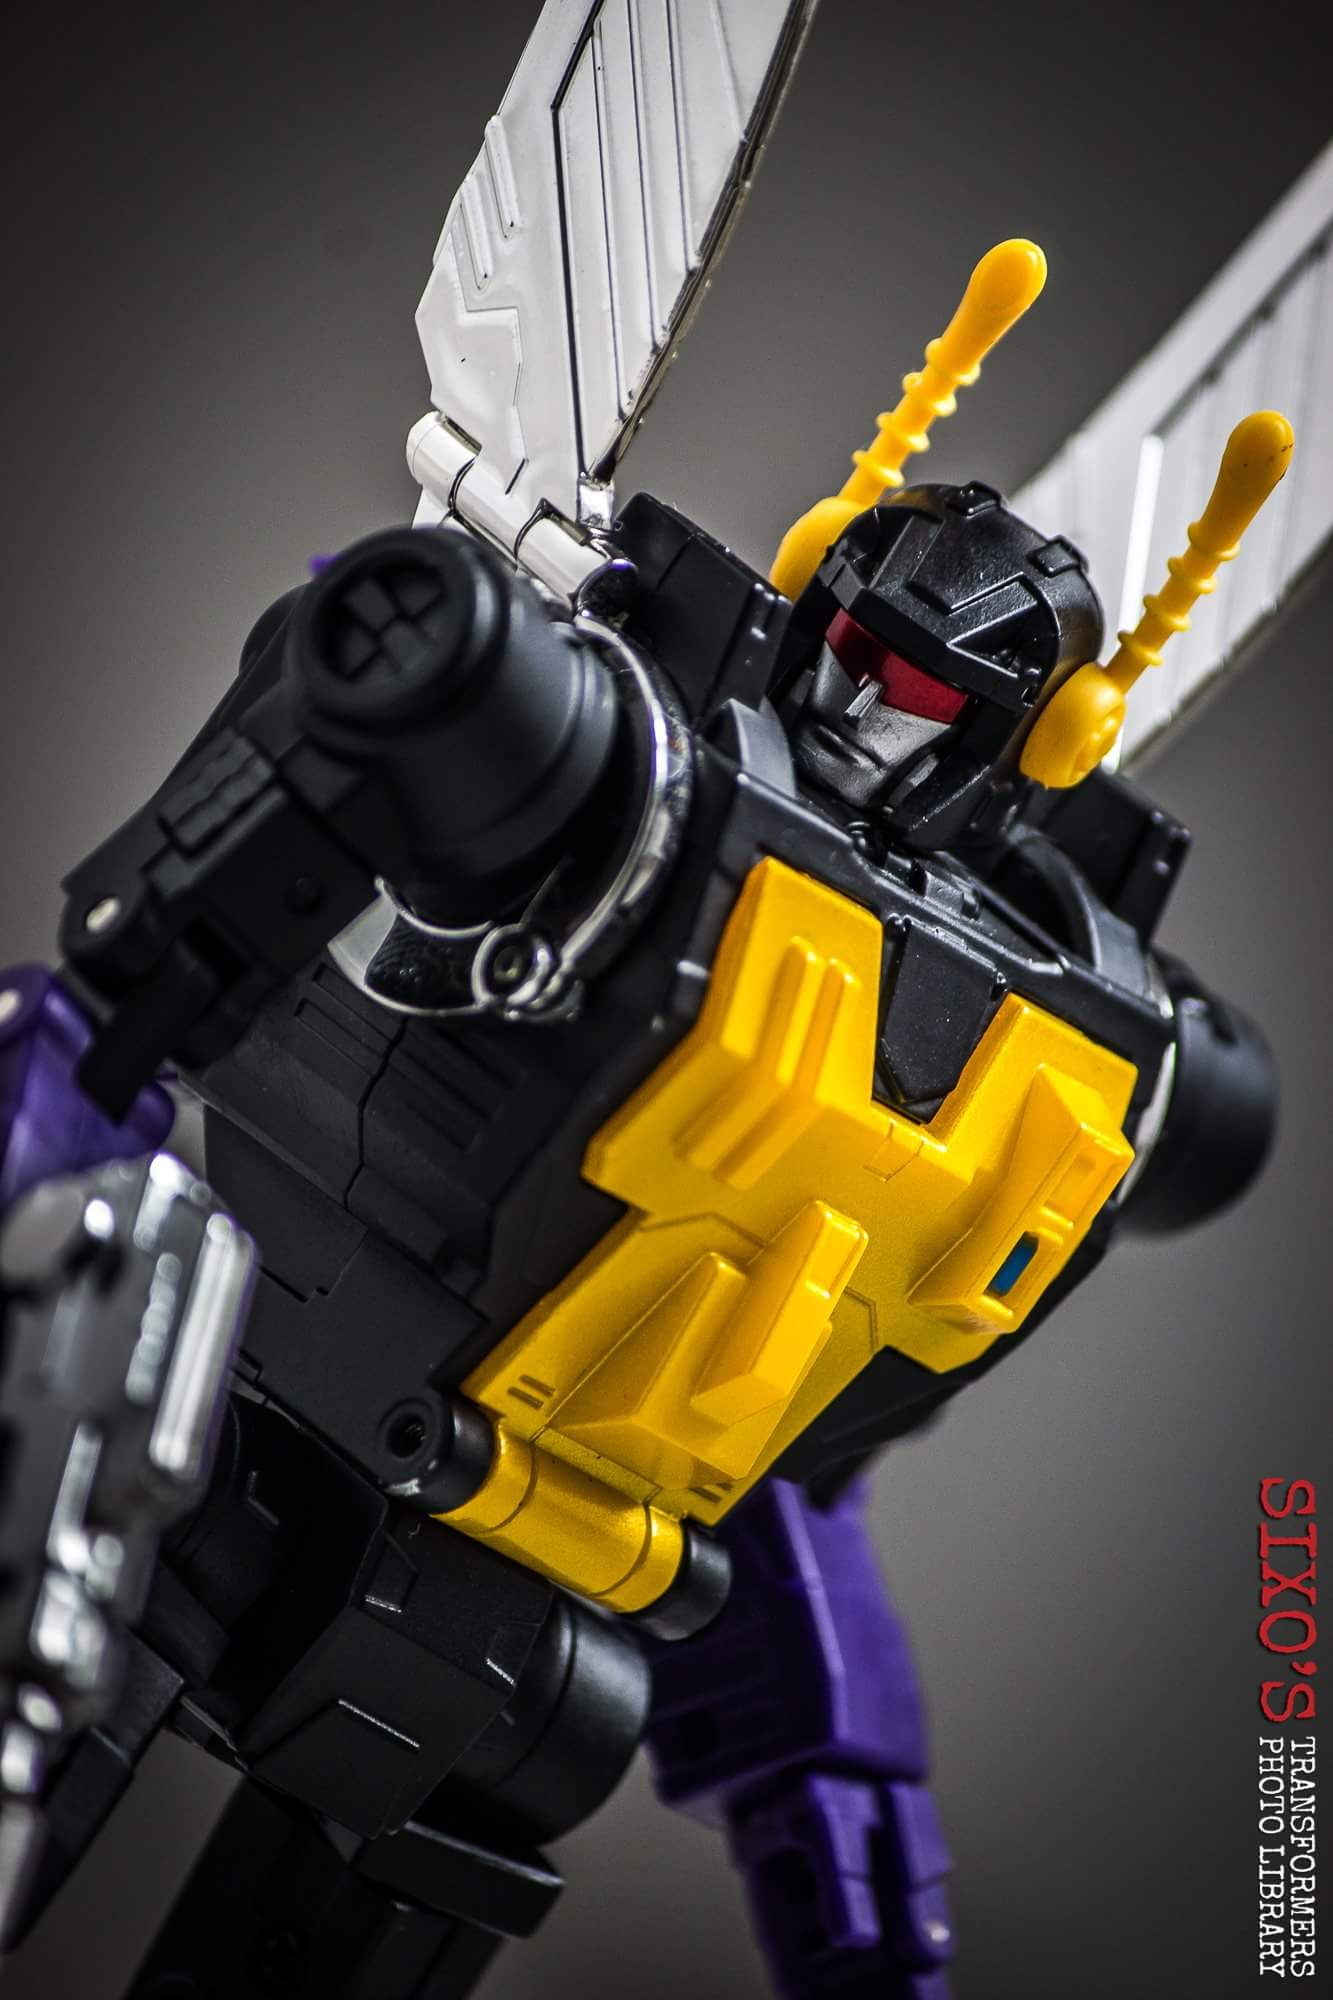 [Fanstoys] Produit Tiers - Jouet FT-12 Grenadier / FT-13 Mercenary / FT-14 Forager - aka Insecticons - Page 4 LrGNoa2q